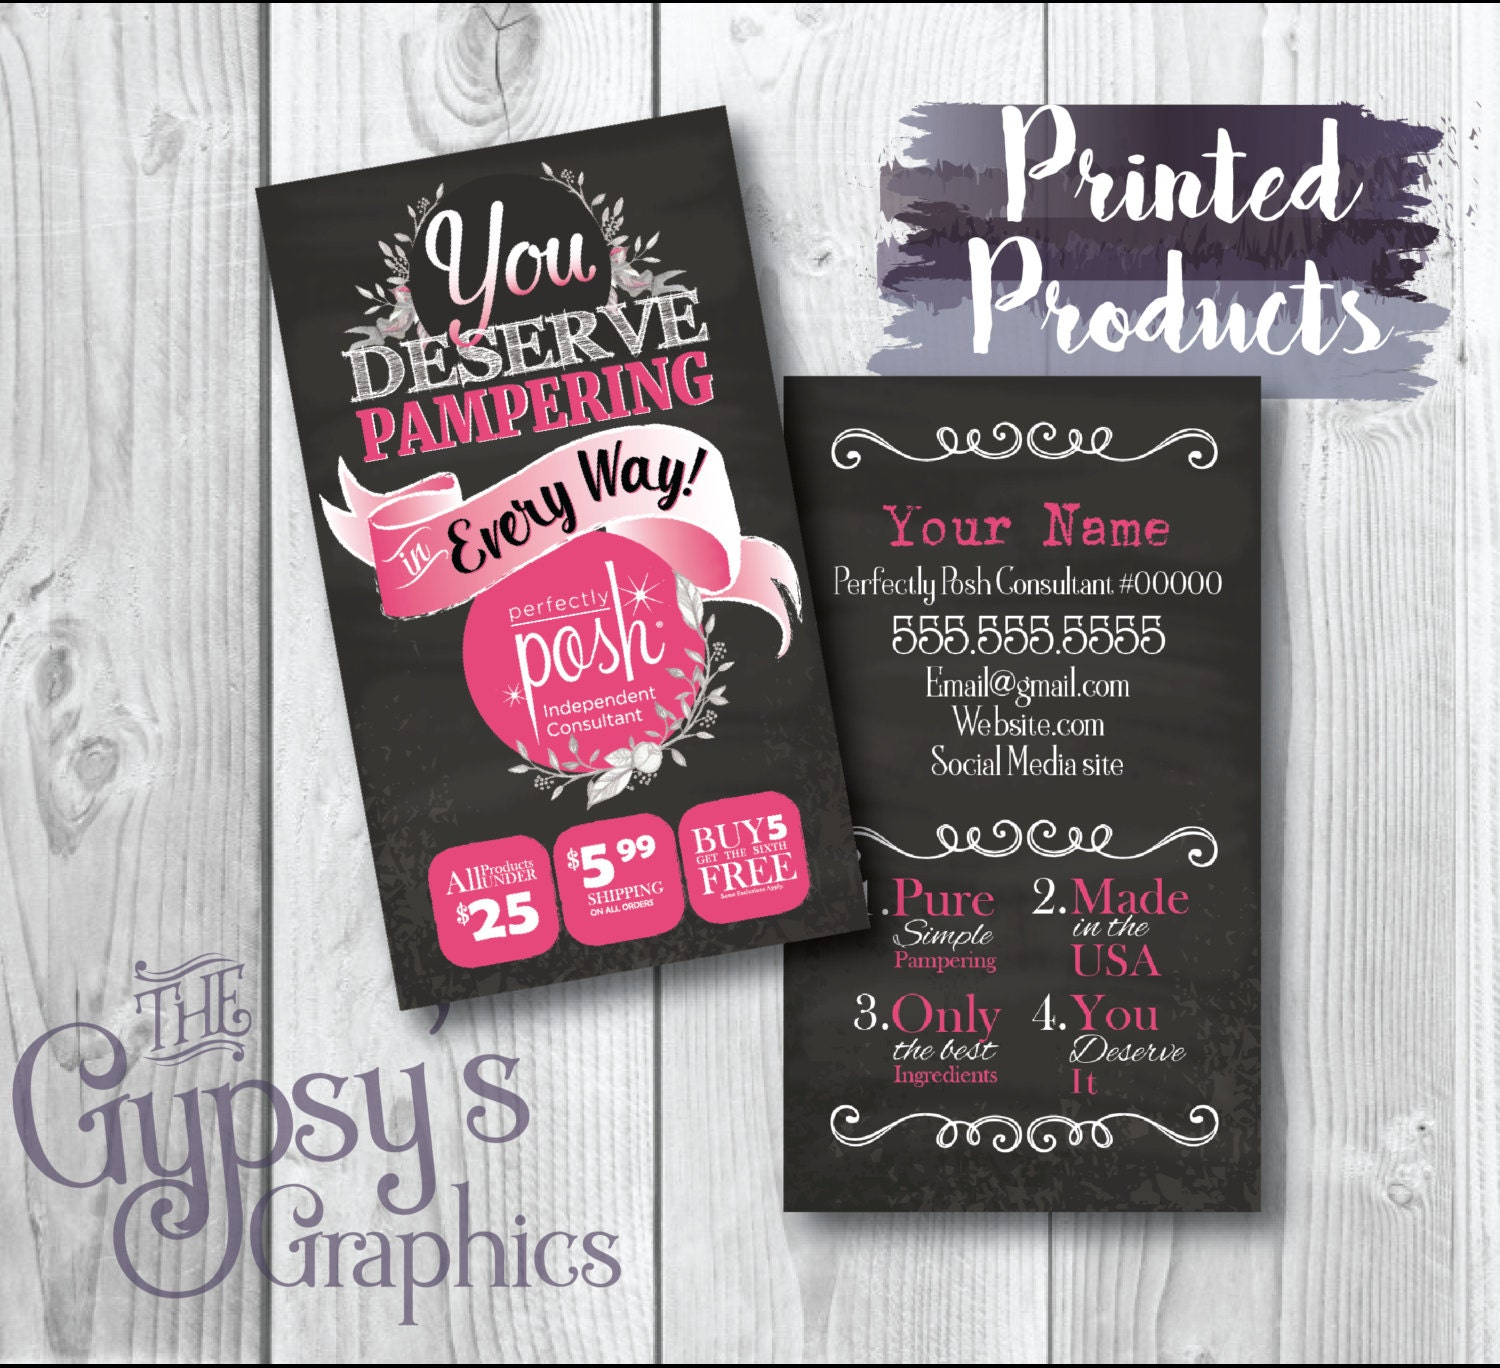 Perfectly Posh Business Cards Chalkboard LovePRINTED